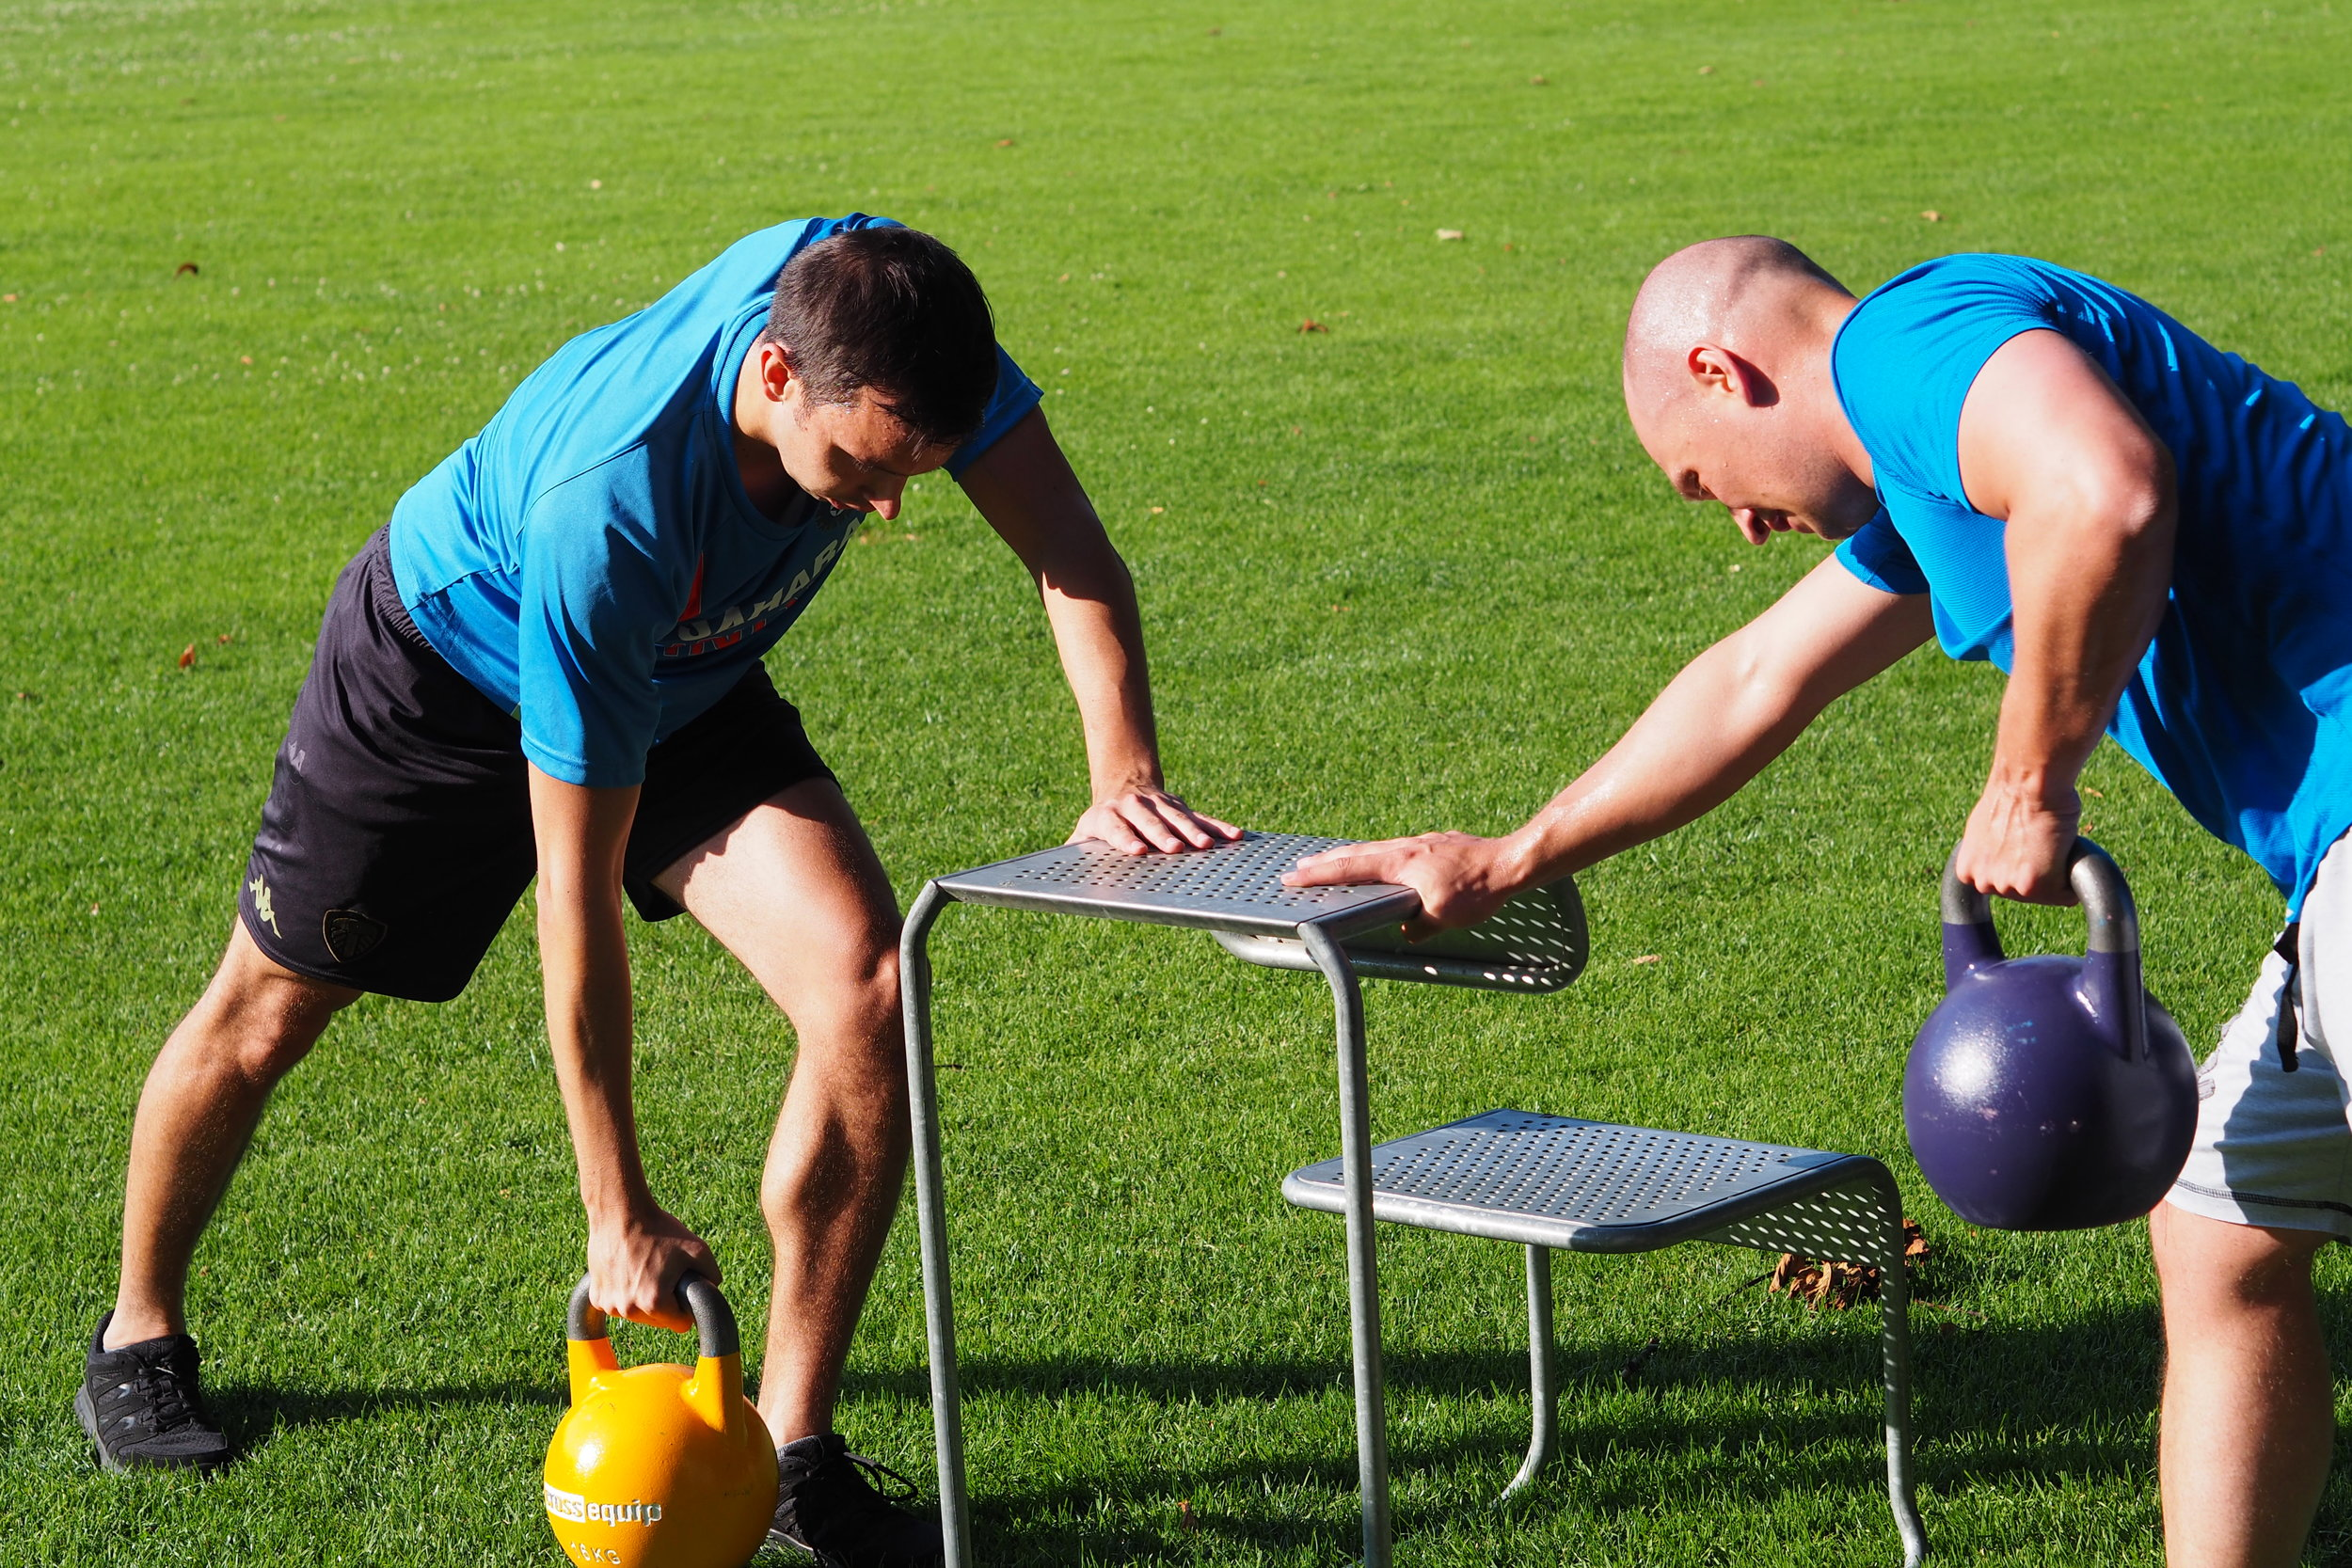 ADAPT, DON'T STOP - Training with an injury